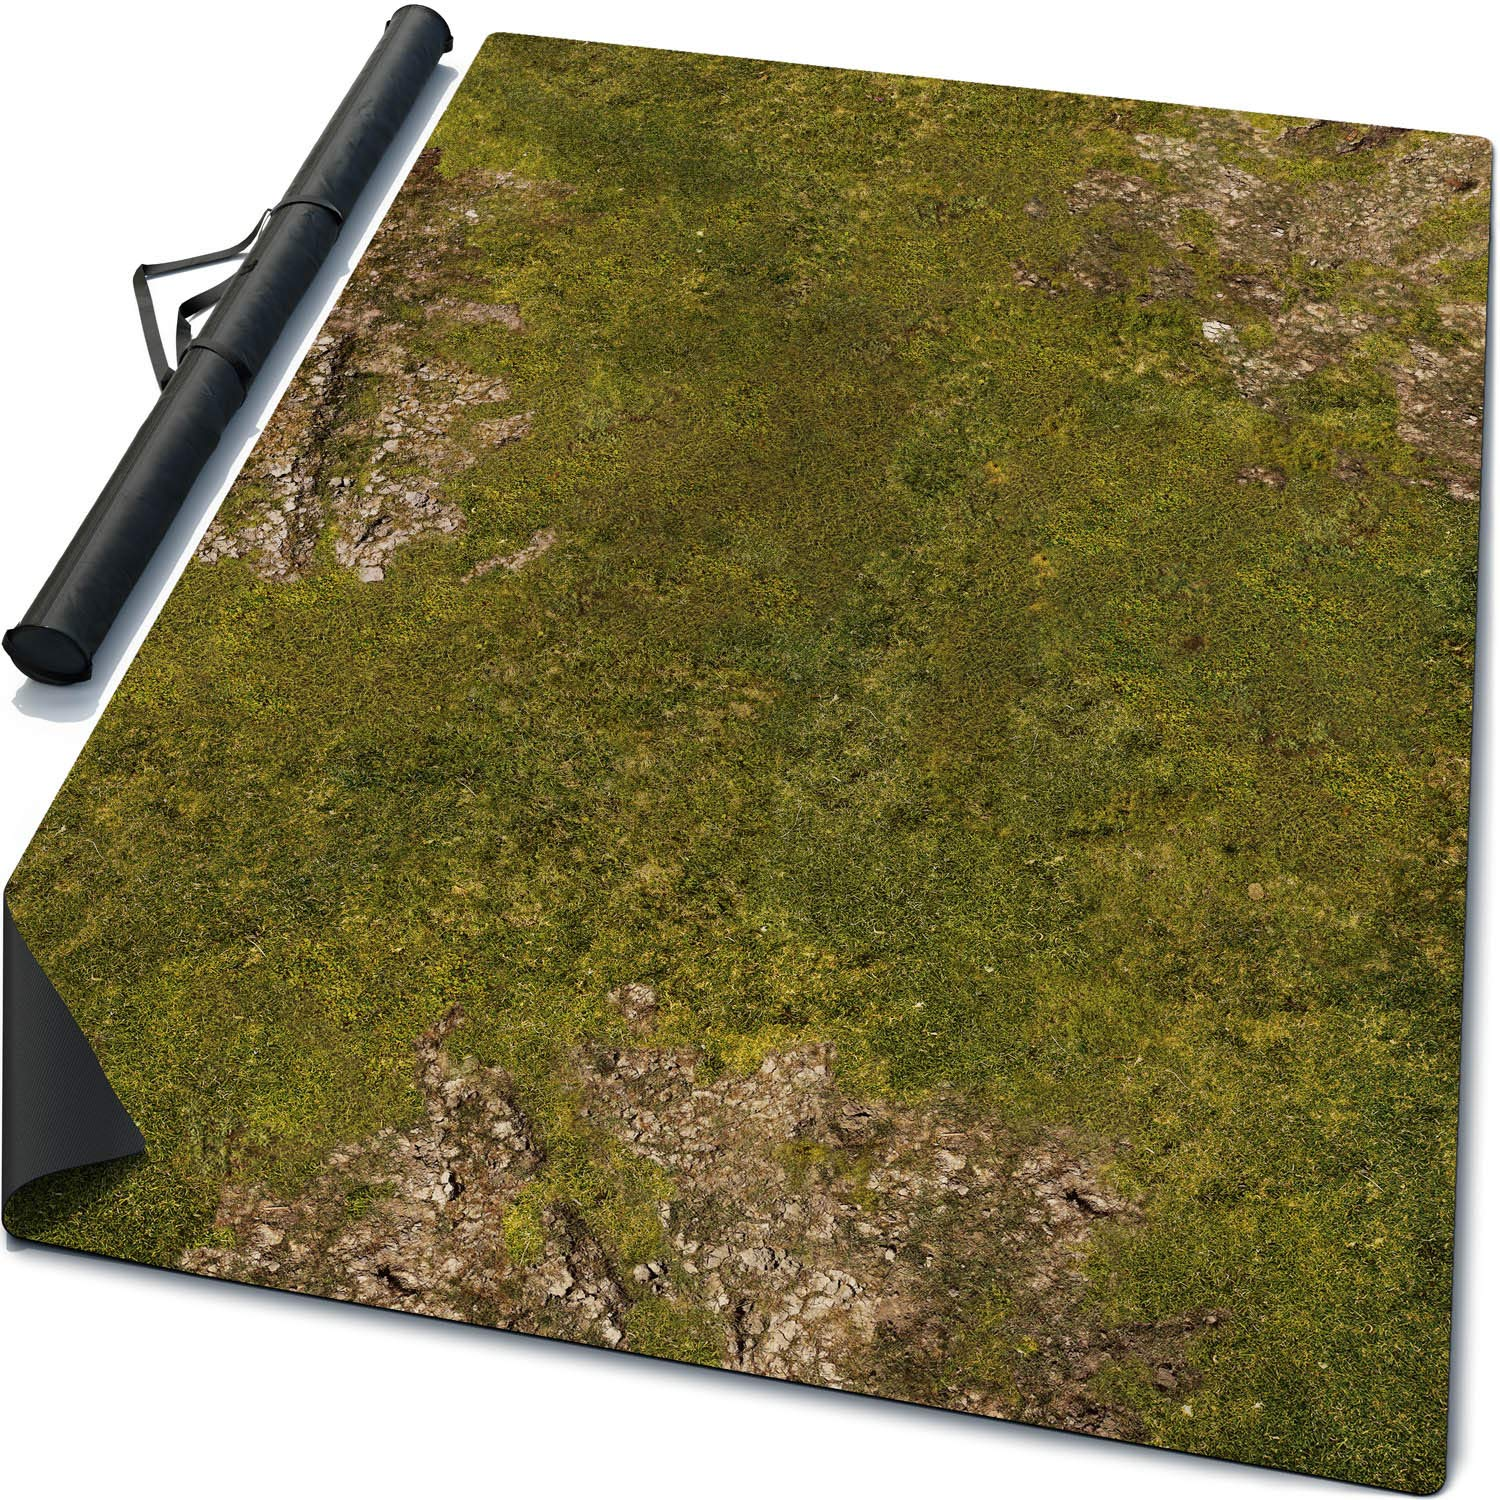 6' x 4' Rubber Battle Mat: Homeland + Bag